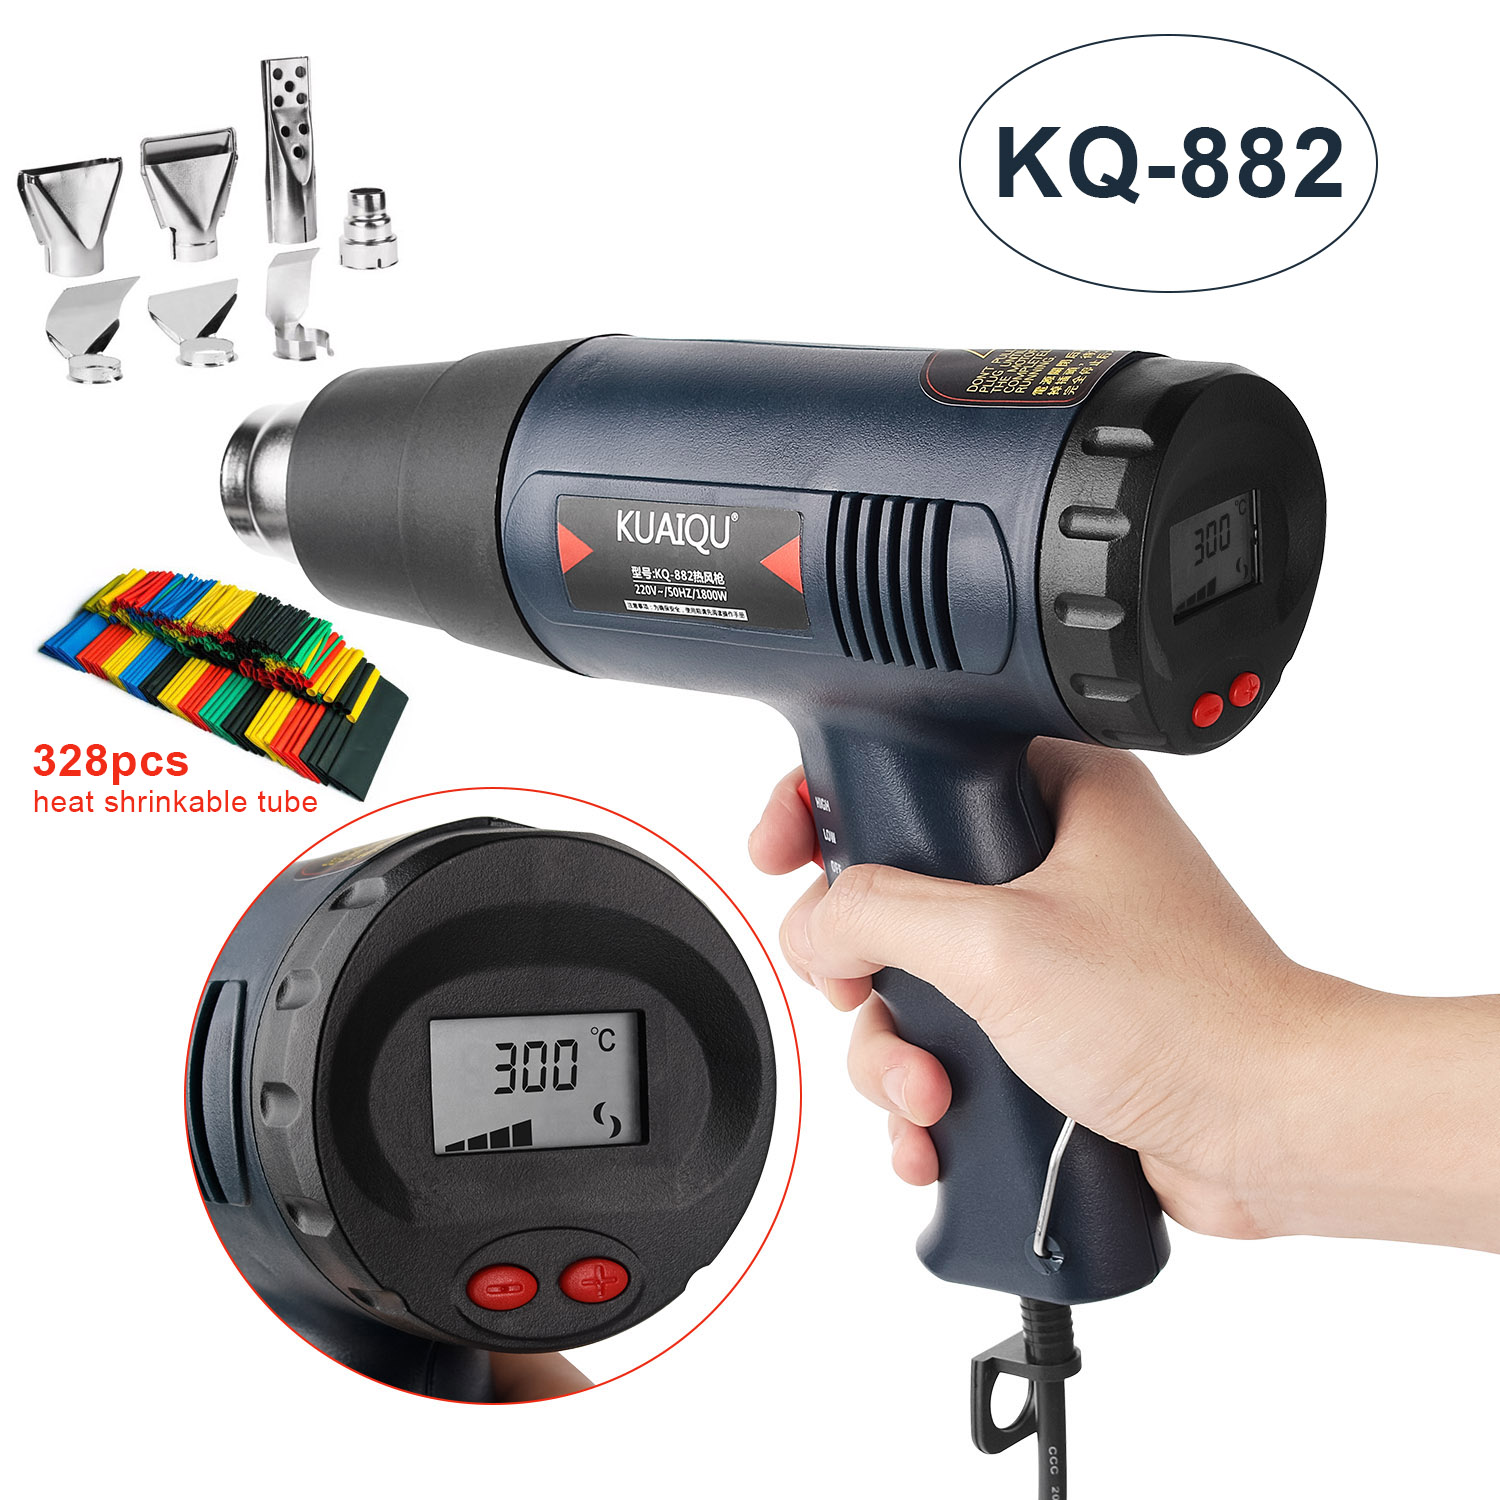 60 ℃ -600 ℃ Professional Hot Air Gun LCD Digital Display Two Gear Buttons Temperature Adjustment With 7pcs Hot Air Nozzles